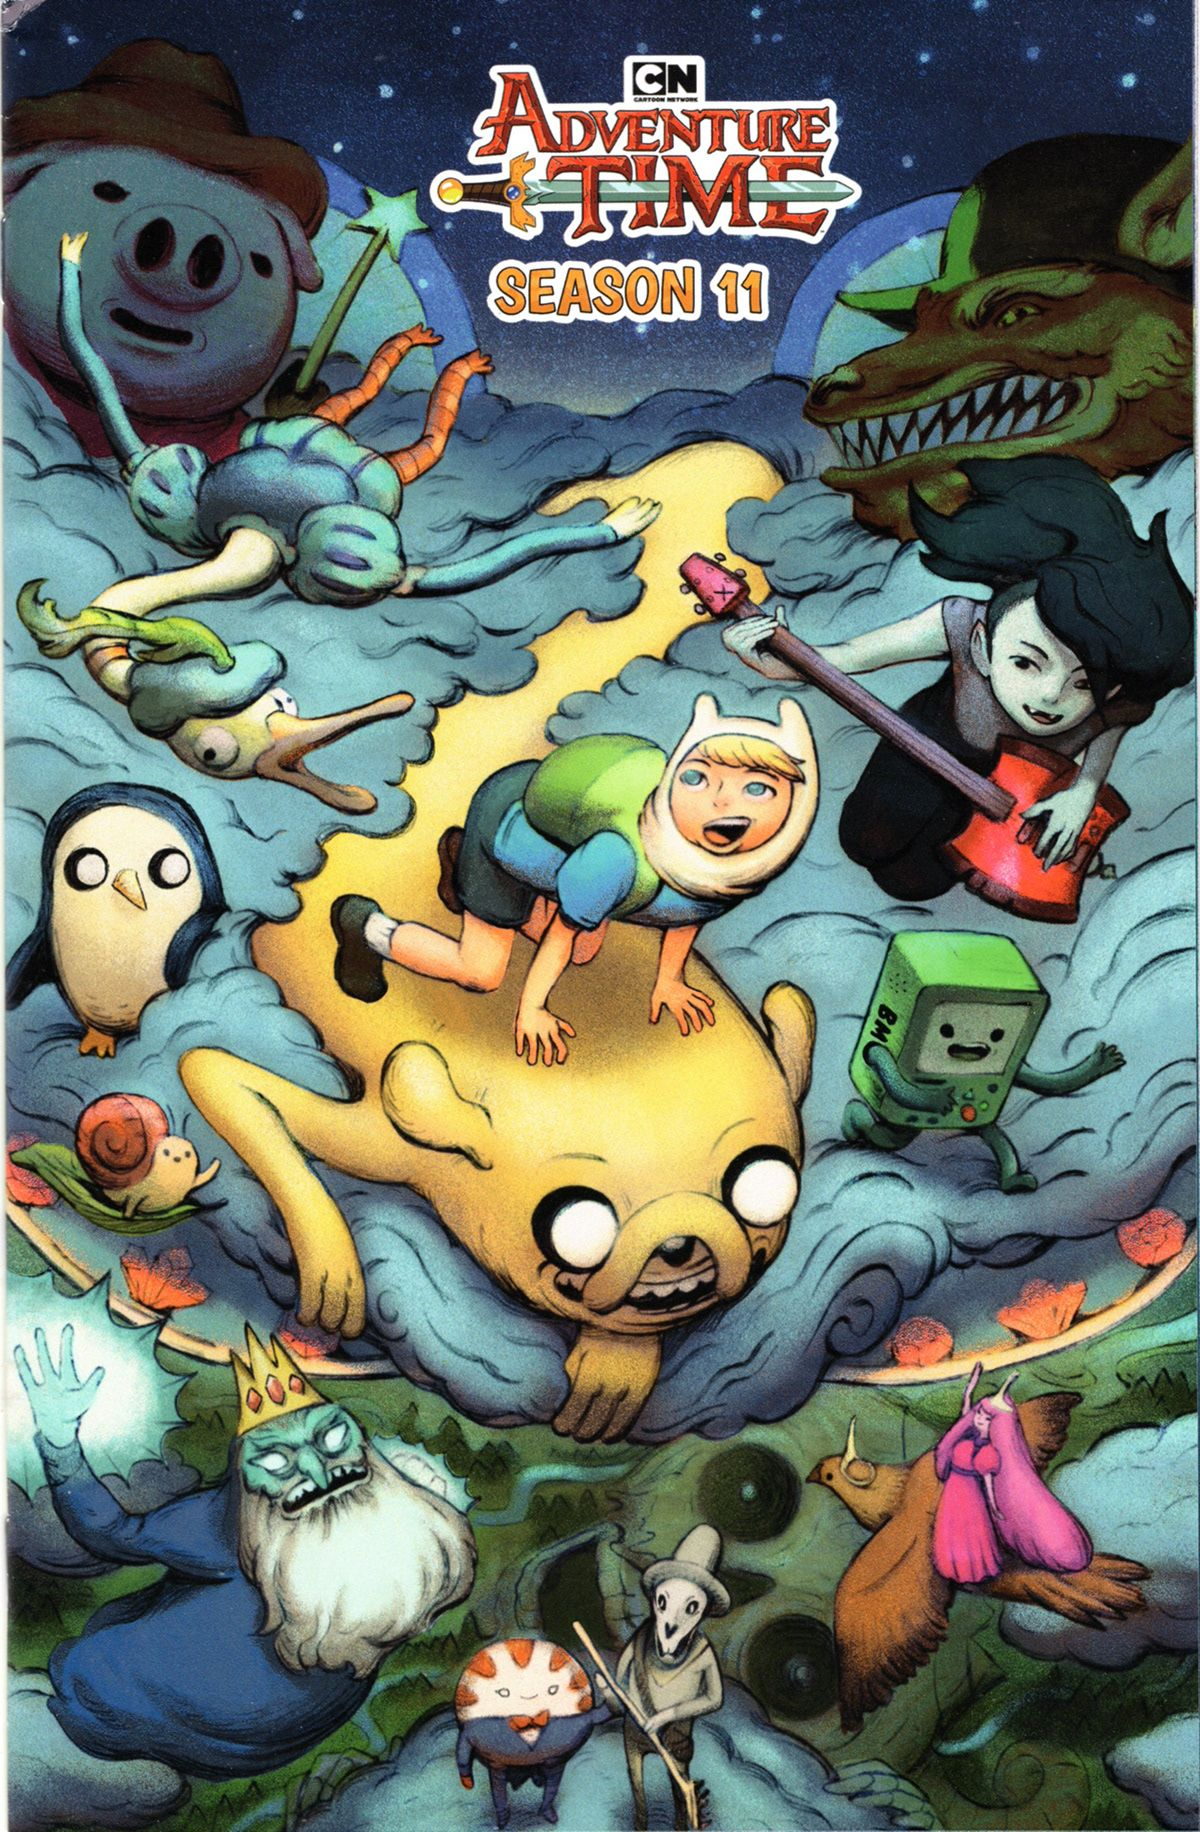 Adventure time variant covers boom cartoon network on